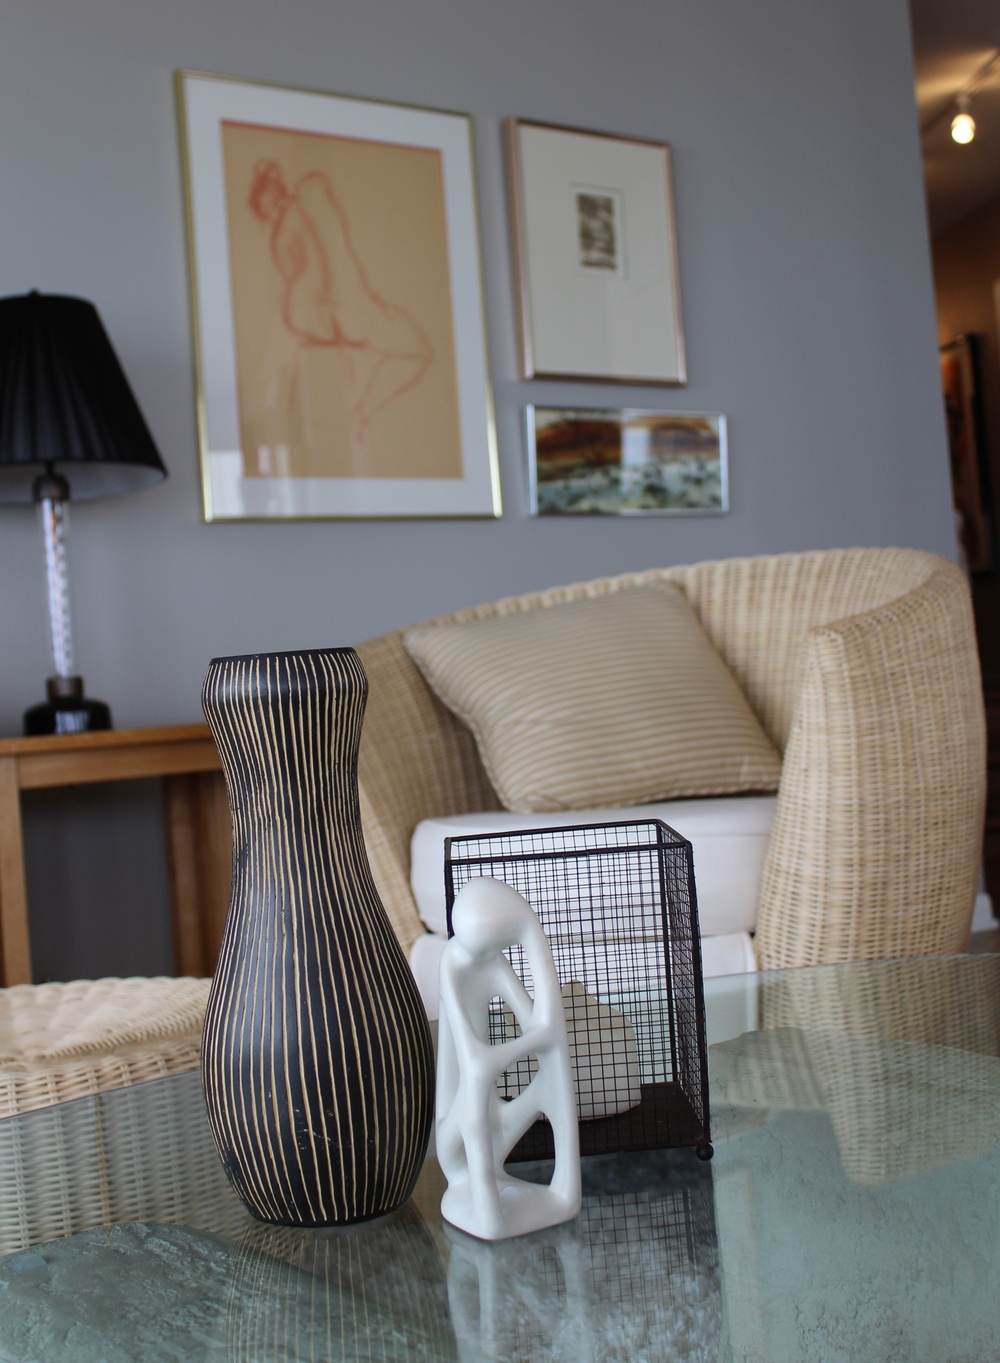 African vase, soapstone sculpture, woven chair, glass and cement coffee table, grey walls, original artwork